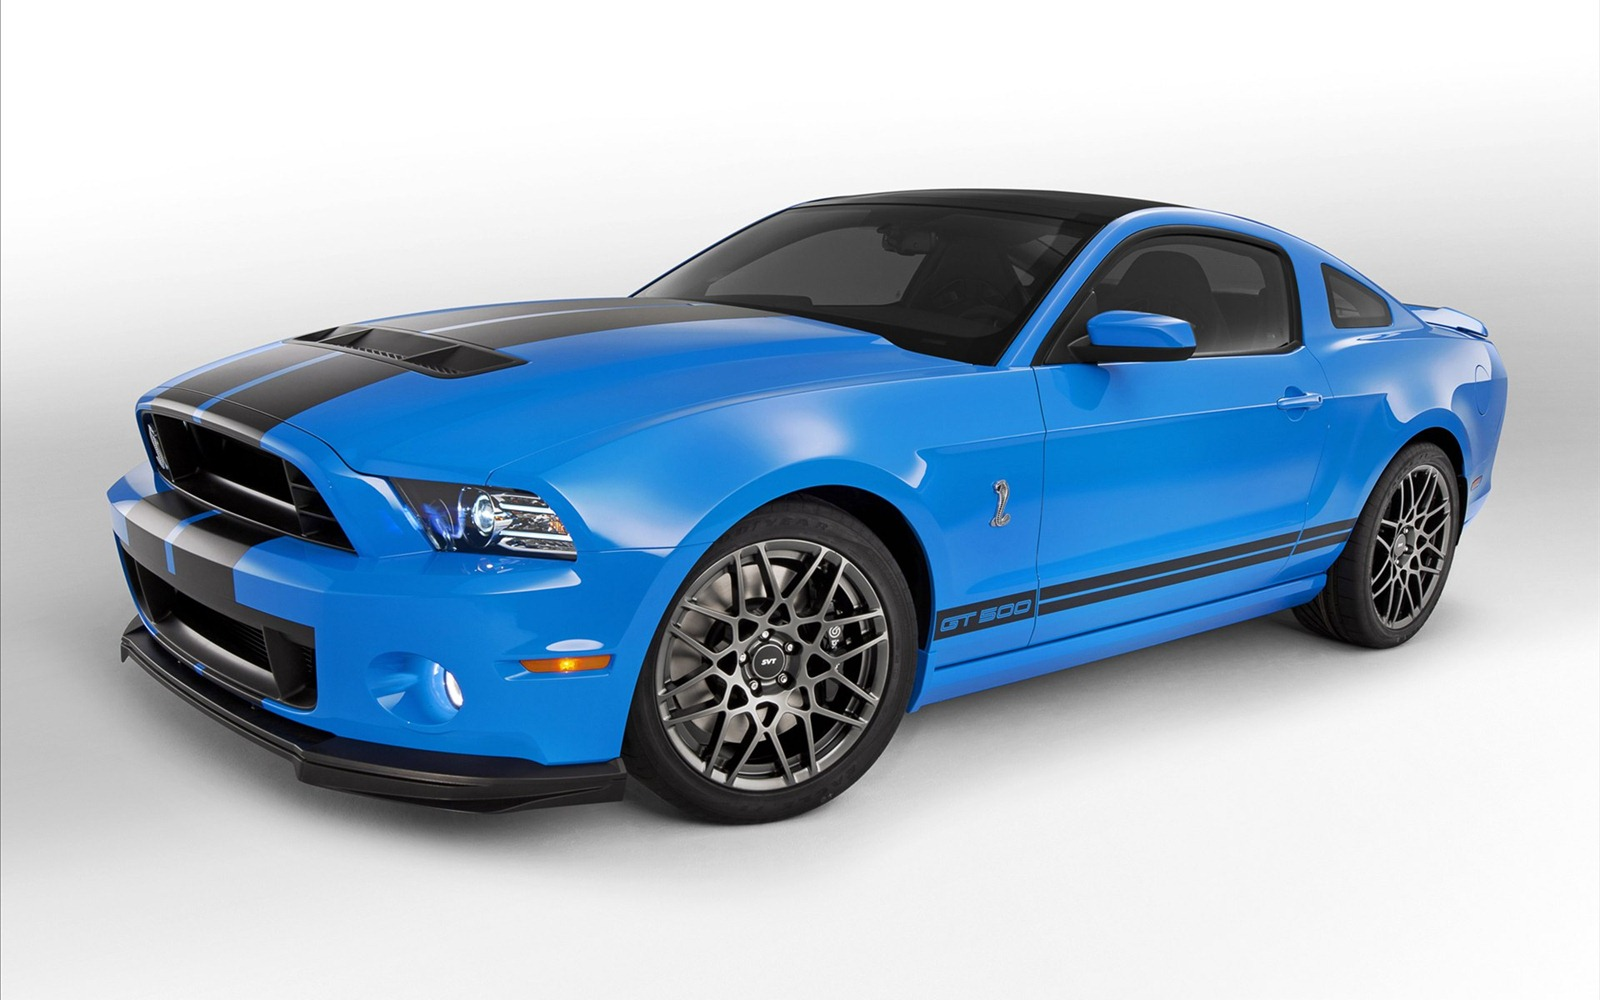 2013 Ford Shelby GT500 wallpapers resolution 19201200 click for 1600x1000